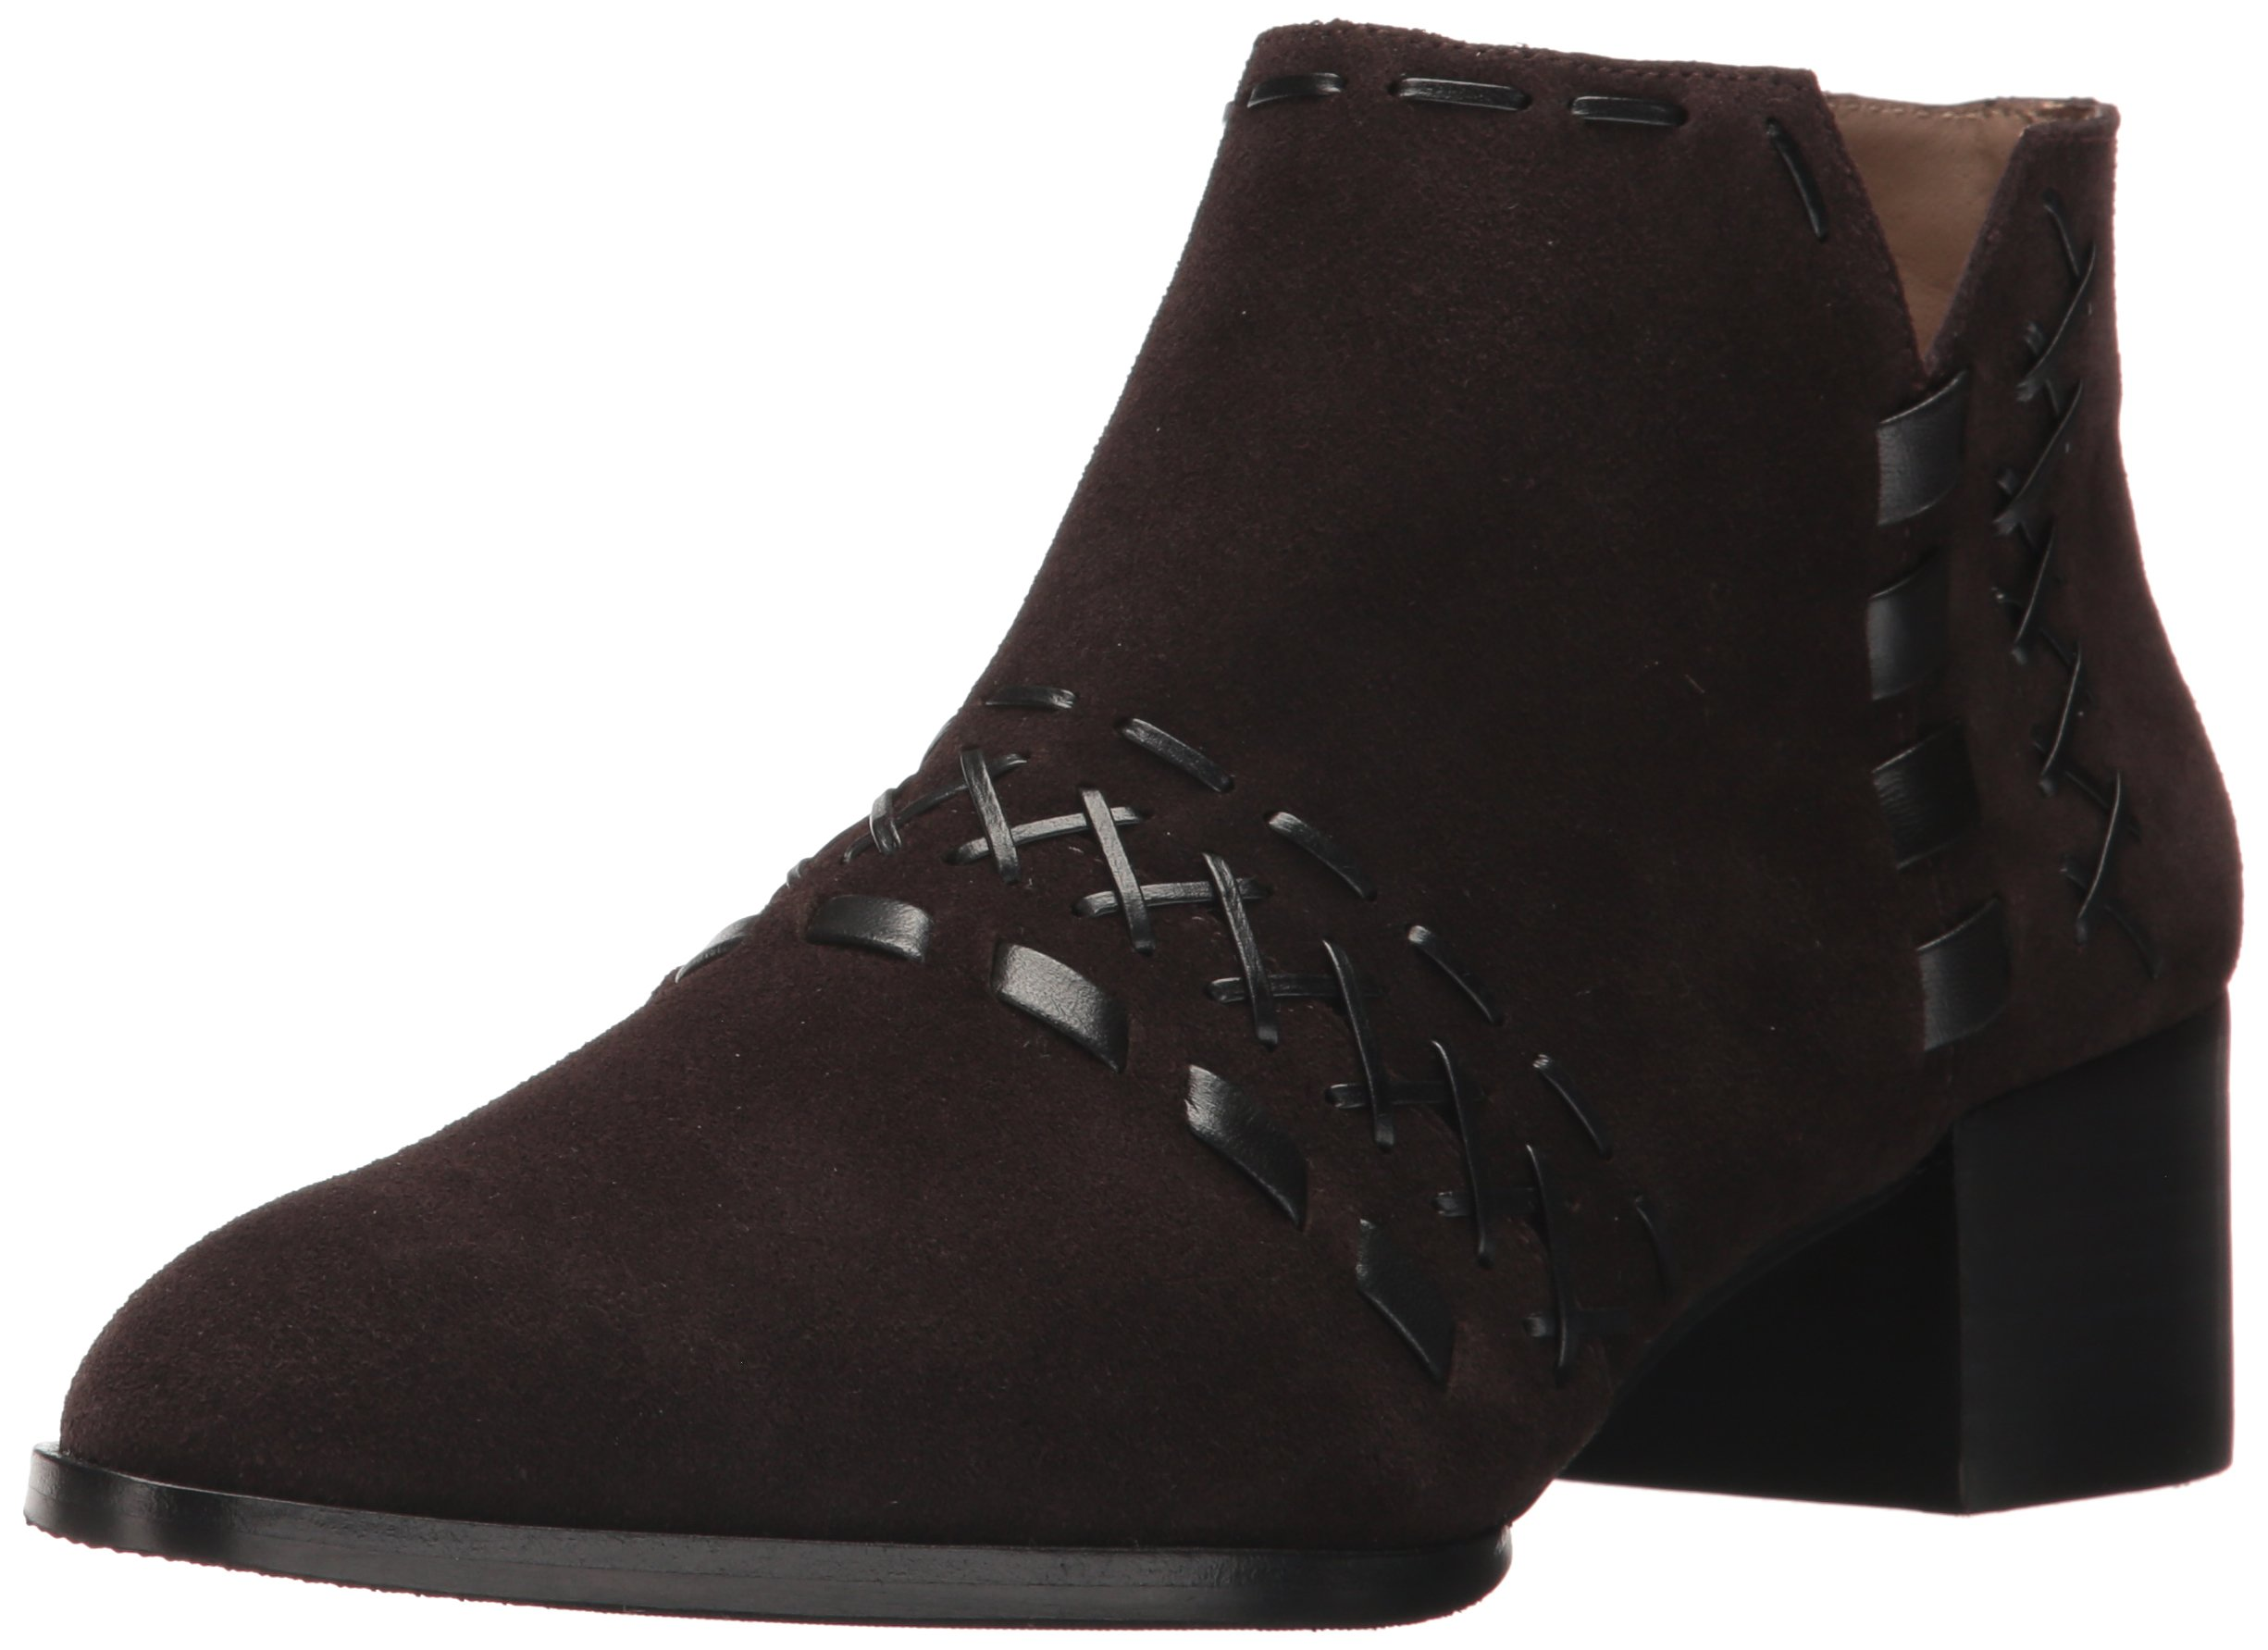 Donald J Pliner Women's Bowery Ankle Boot, Cocoa, 6 M US